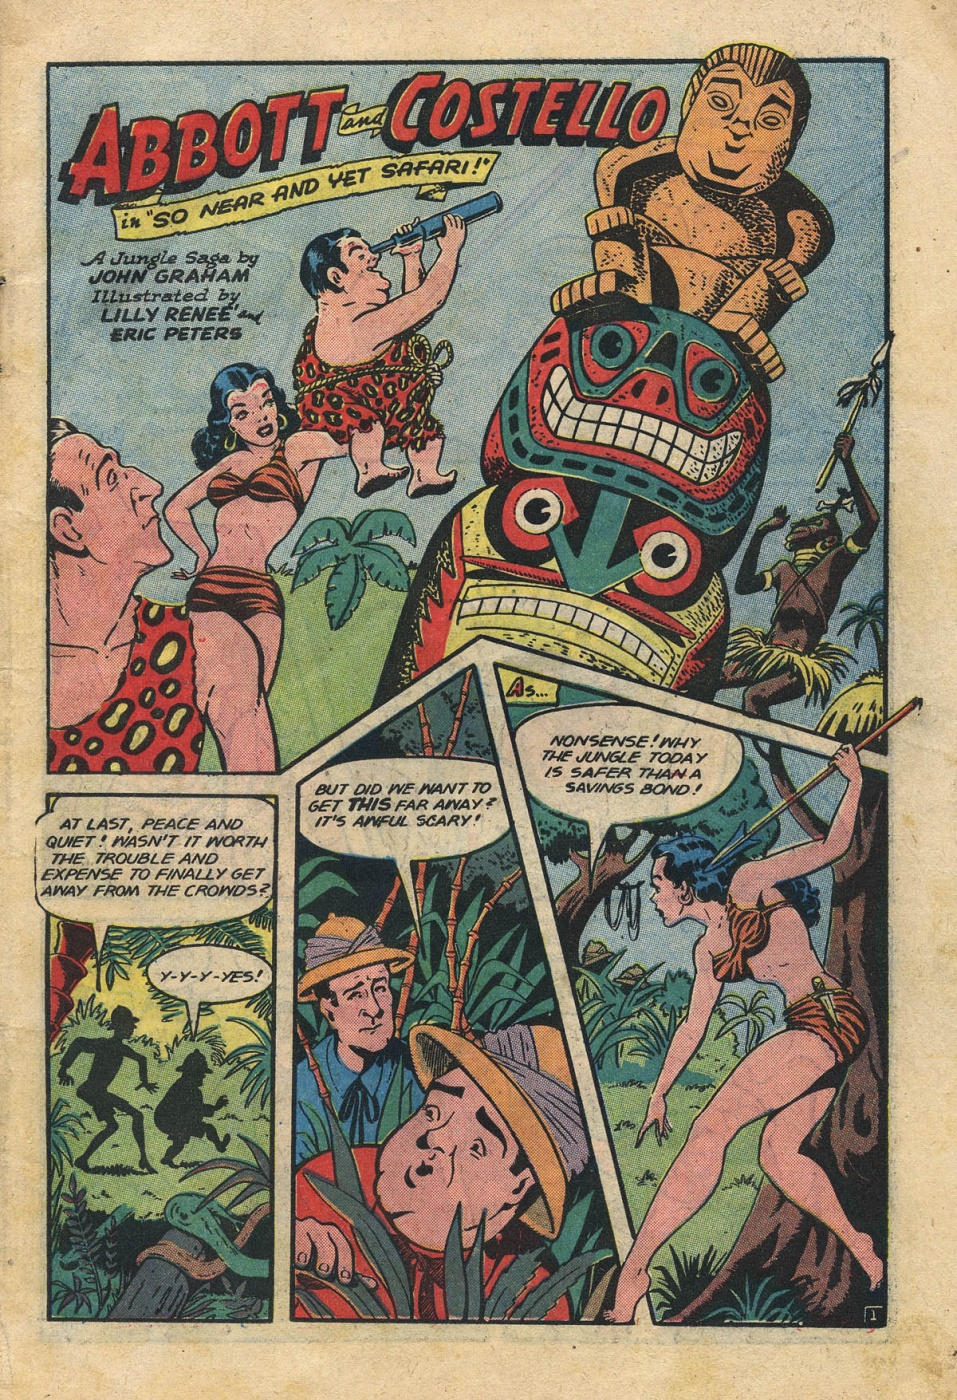 Abbott-Costello-Comics (b) (3)